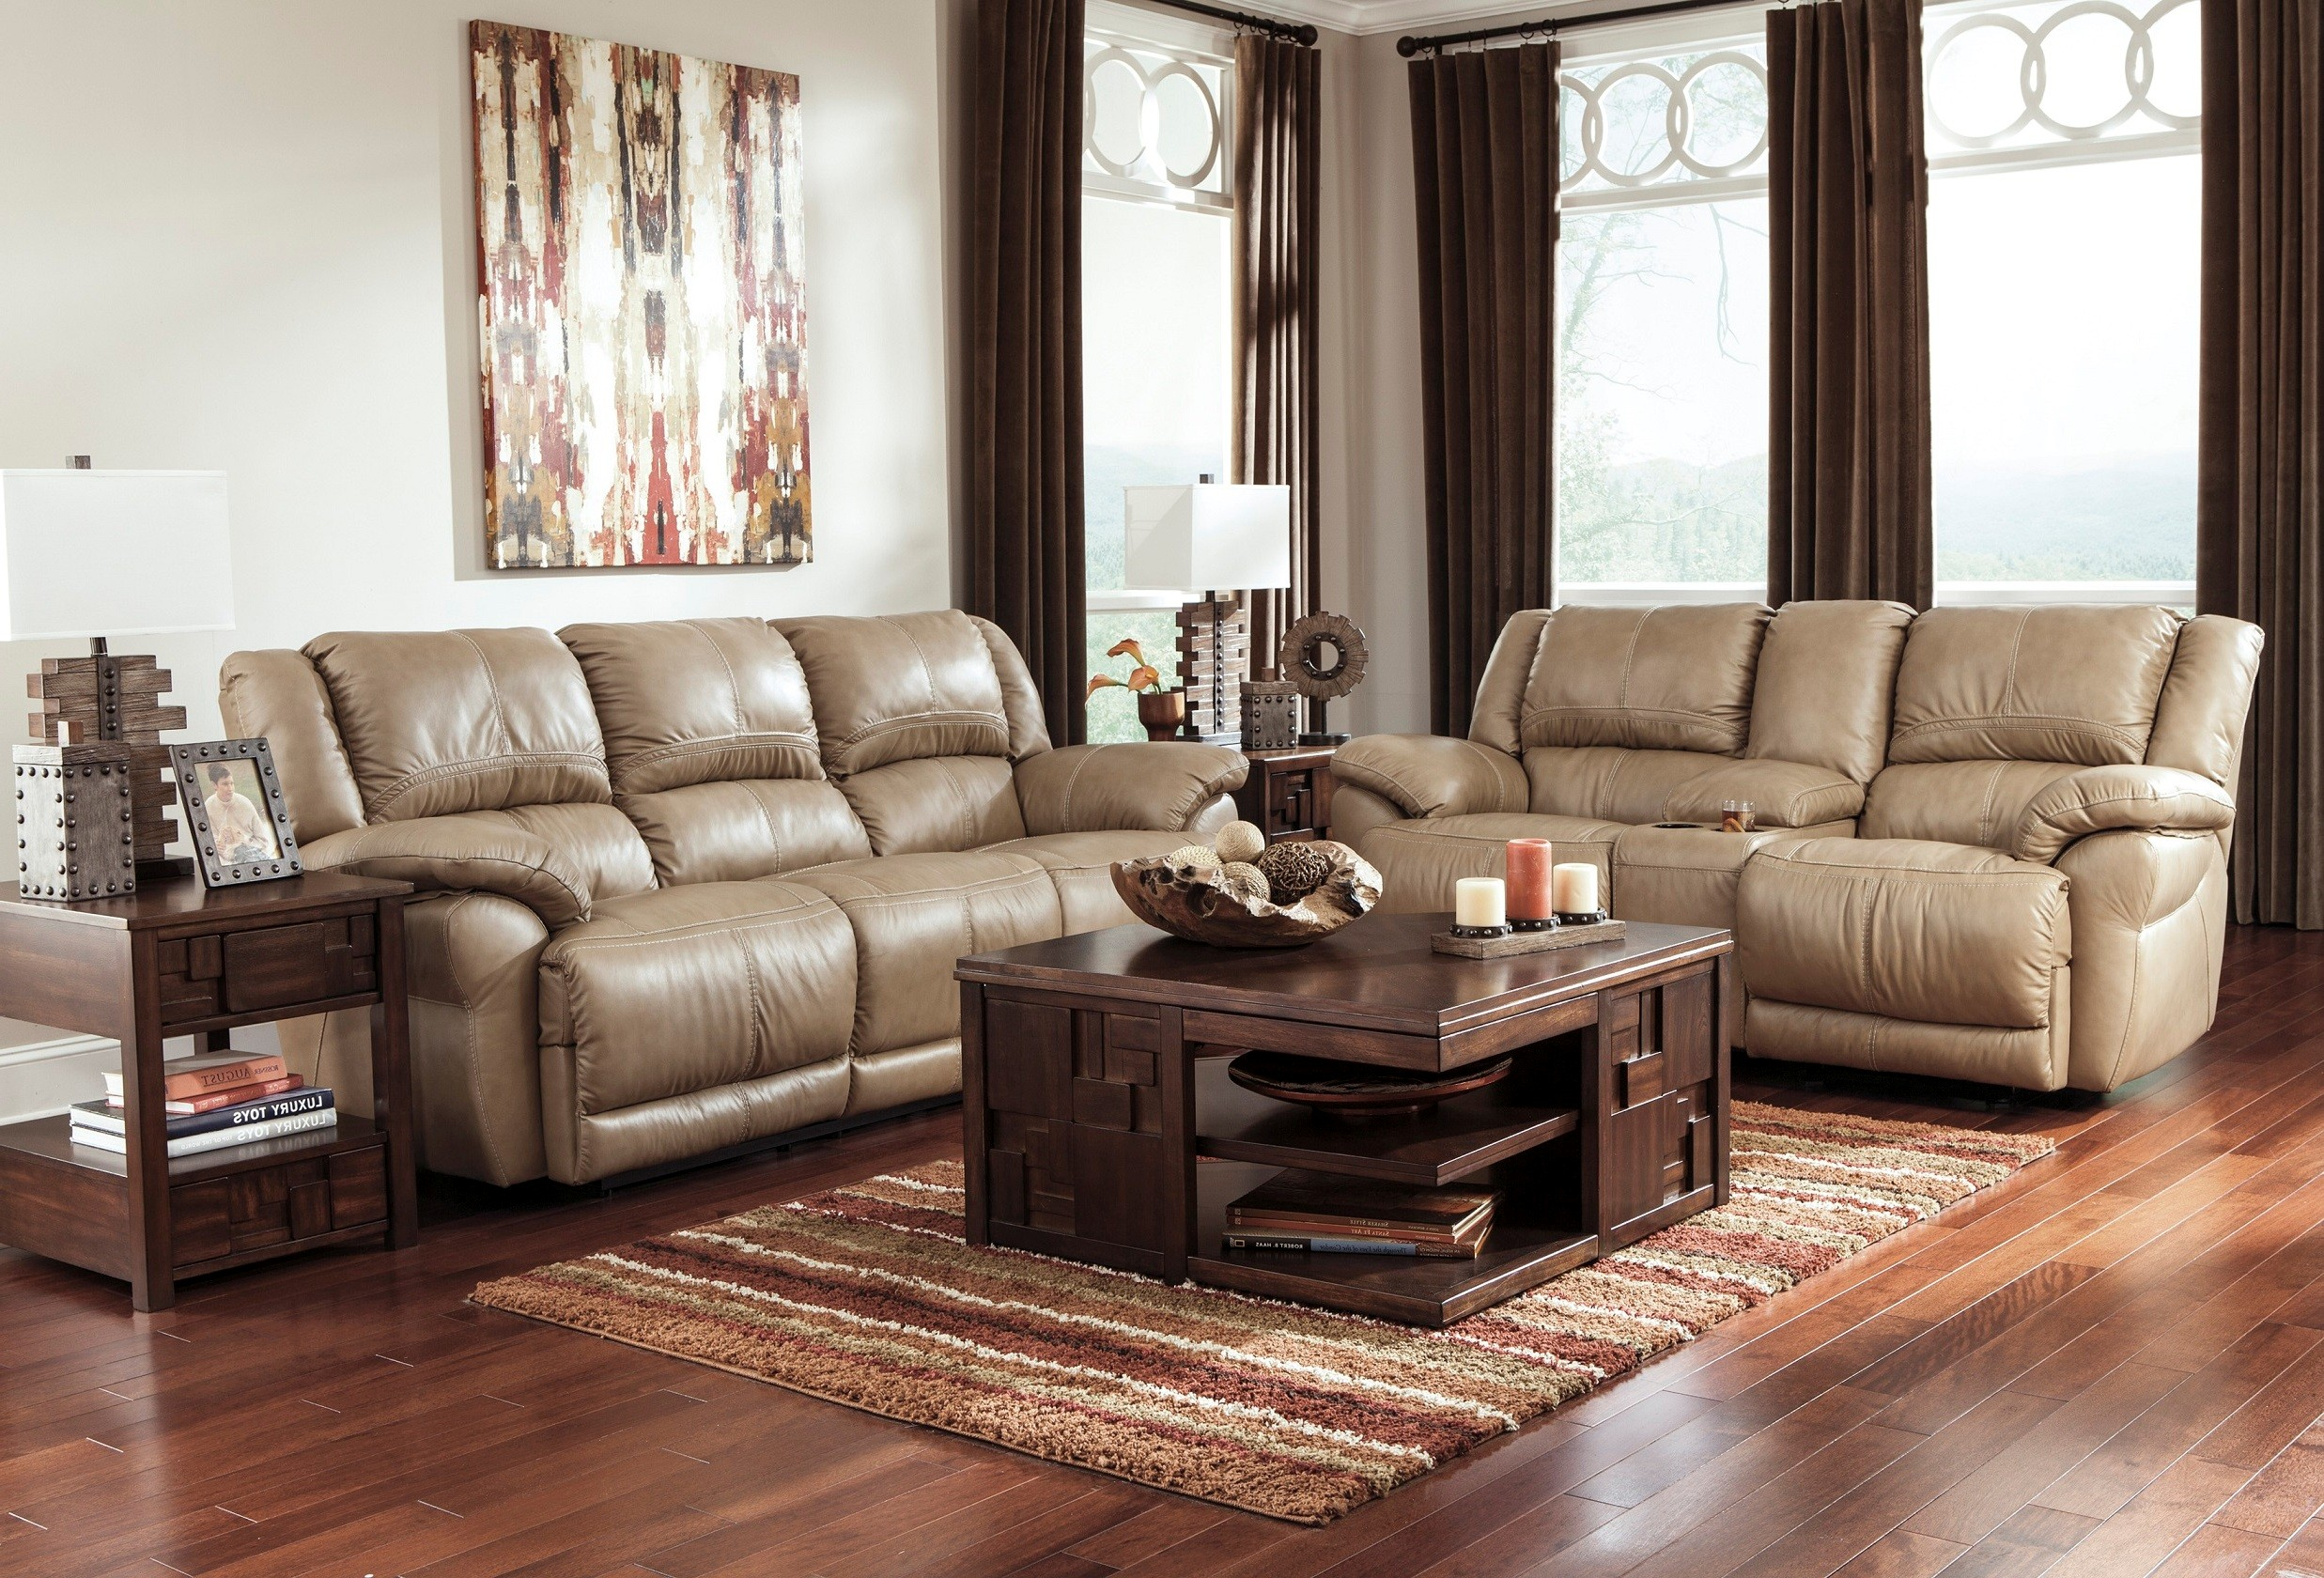 Top Grain Leather Reclining sofa Excellent top Grain Leather sofa Reviews Into the Glass Full Grain Portrait